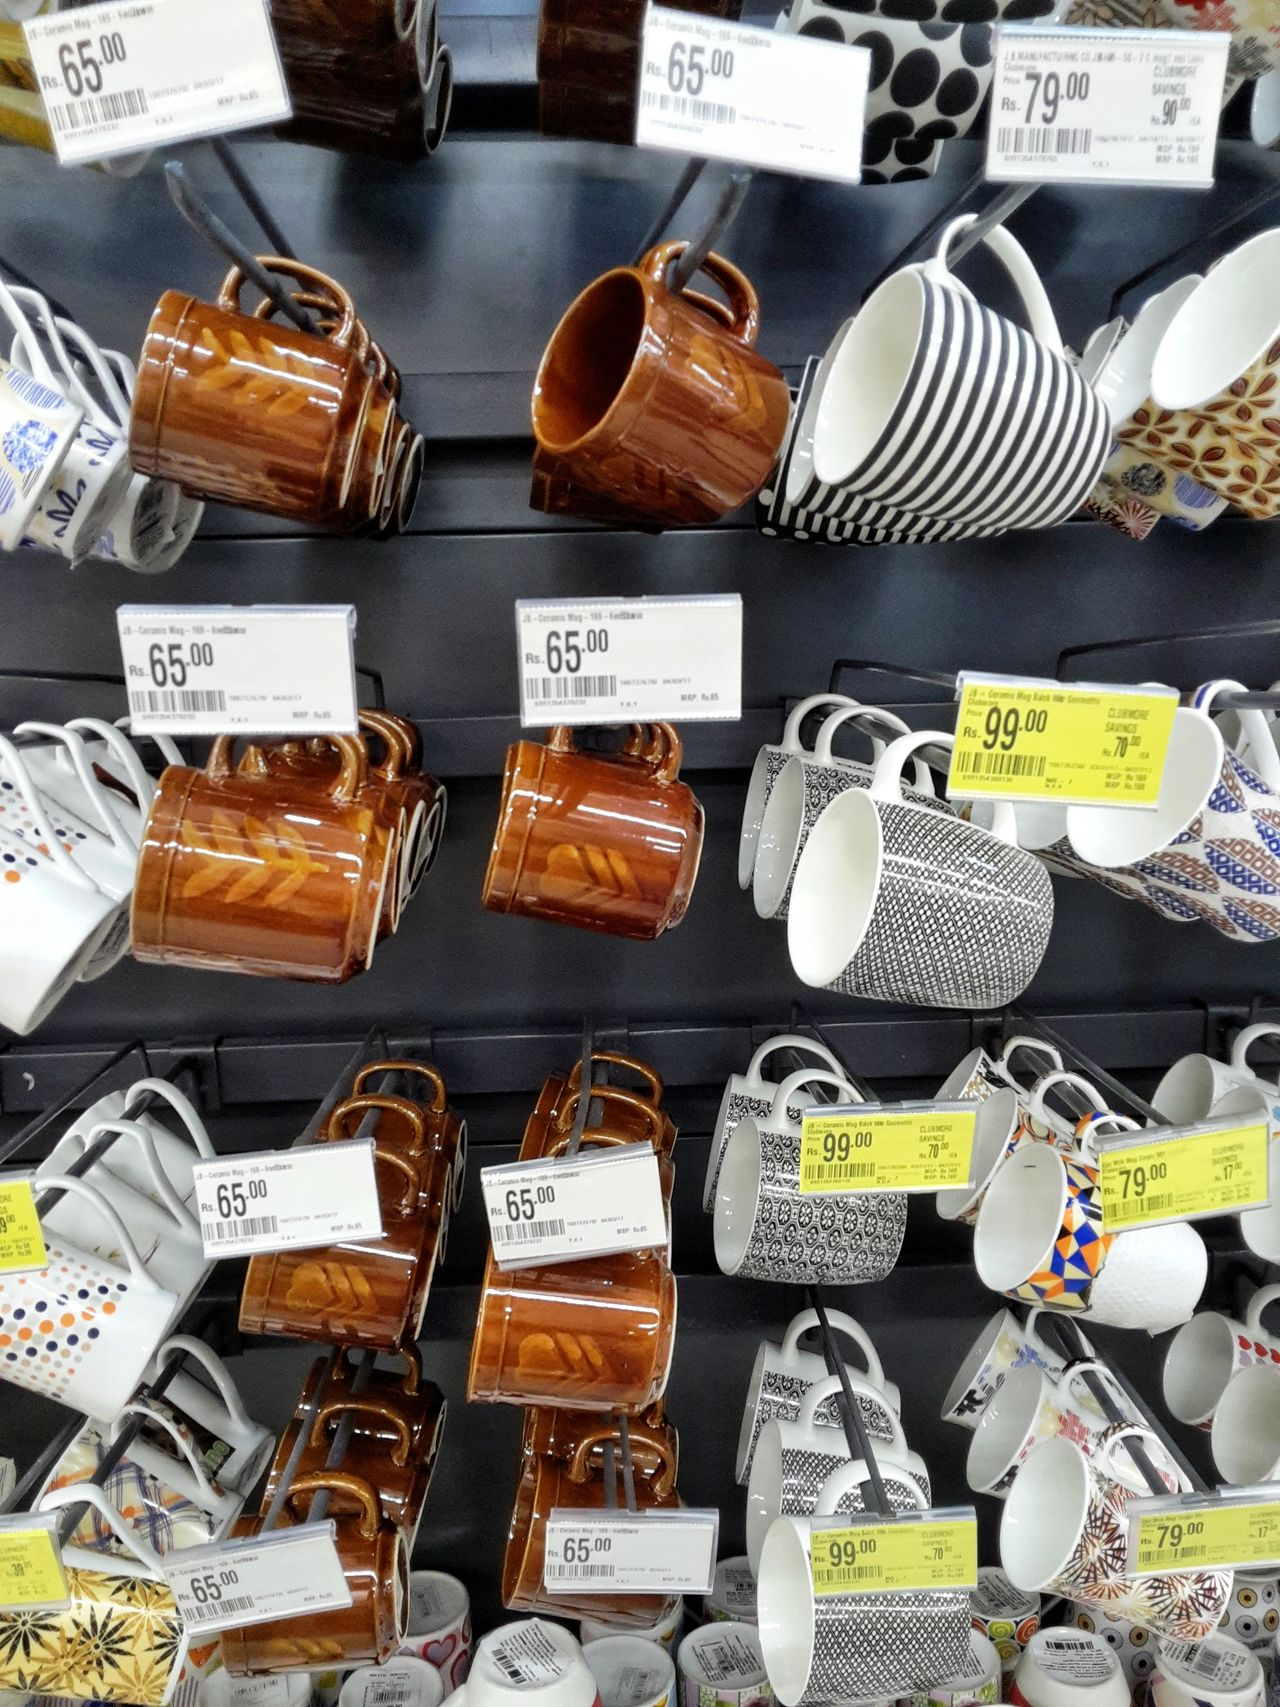 Abundance Large Group Of Objects Full Frame Variation Communication No People Day Price Tag Indoors  Close-up Color Colors Colorful Closeup Photography Cup Of Coffee Cup Of Tea Cups Of Coffe Cups Cups And Mugs Food Cupsofcoffee EyeEm Best Shots Beautiful Indoors  Cup